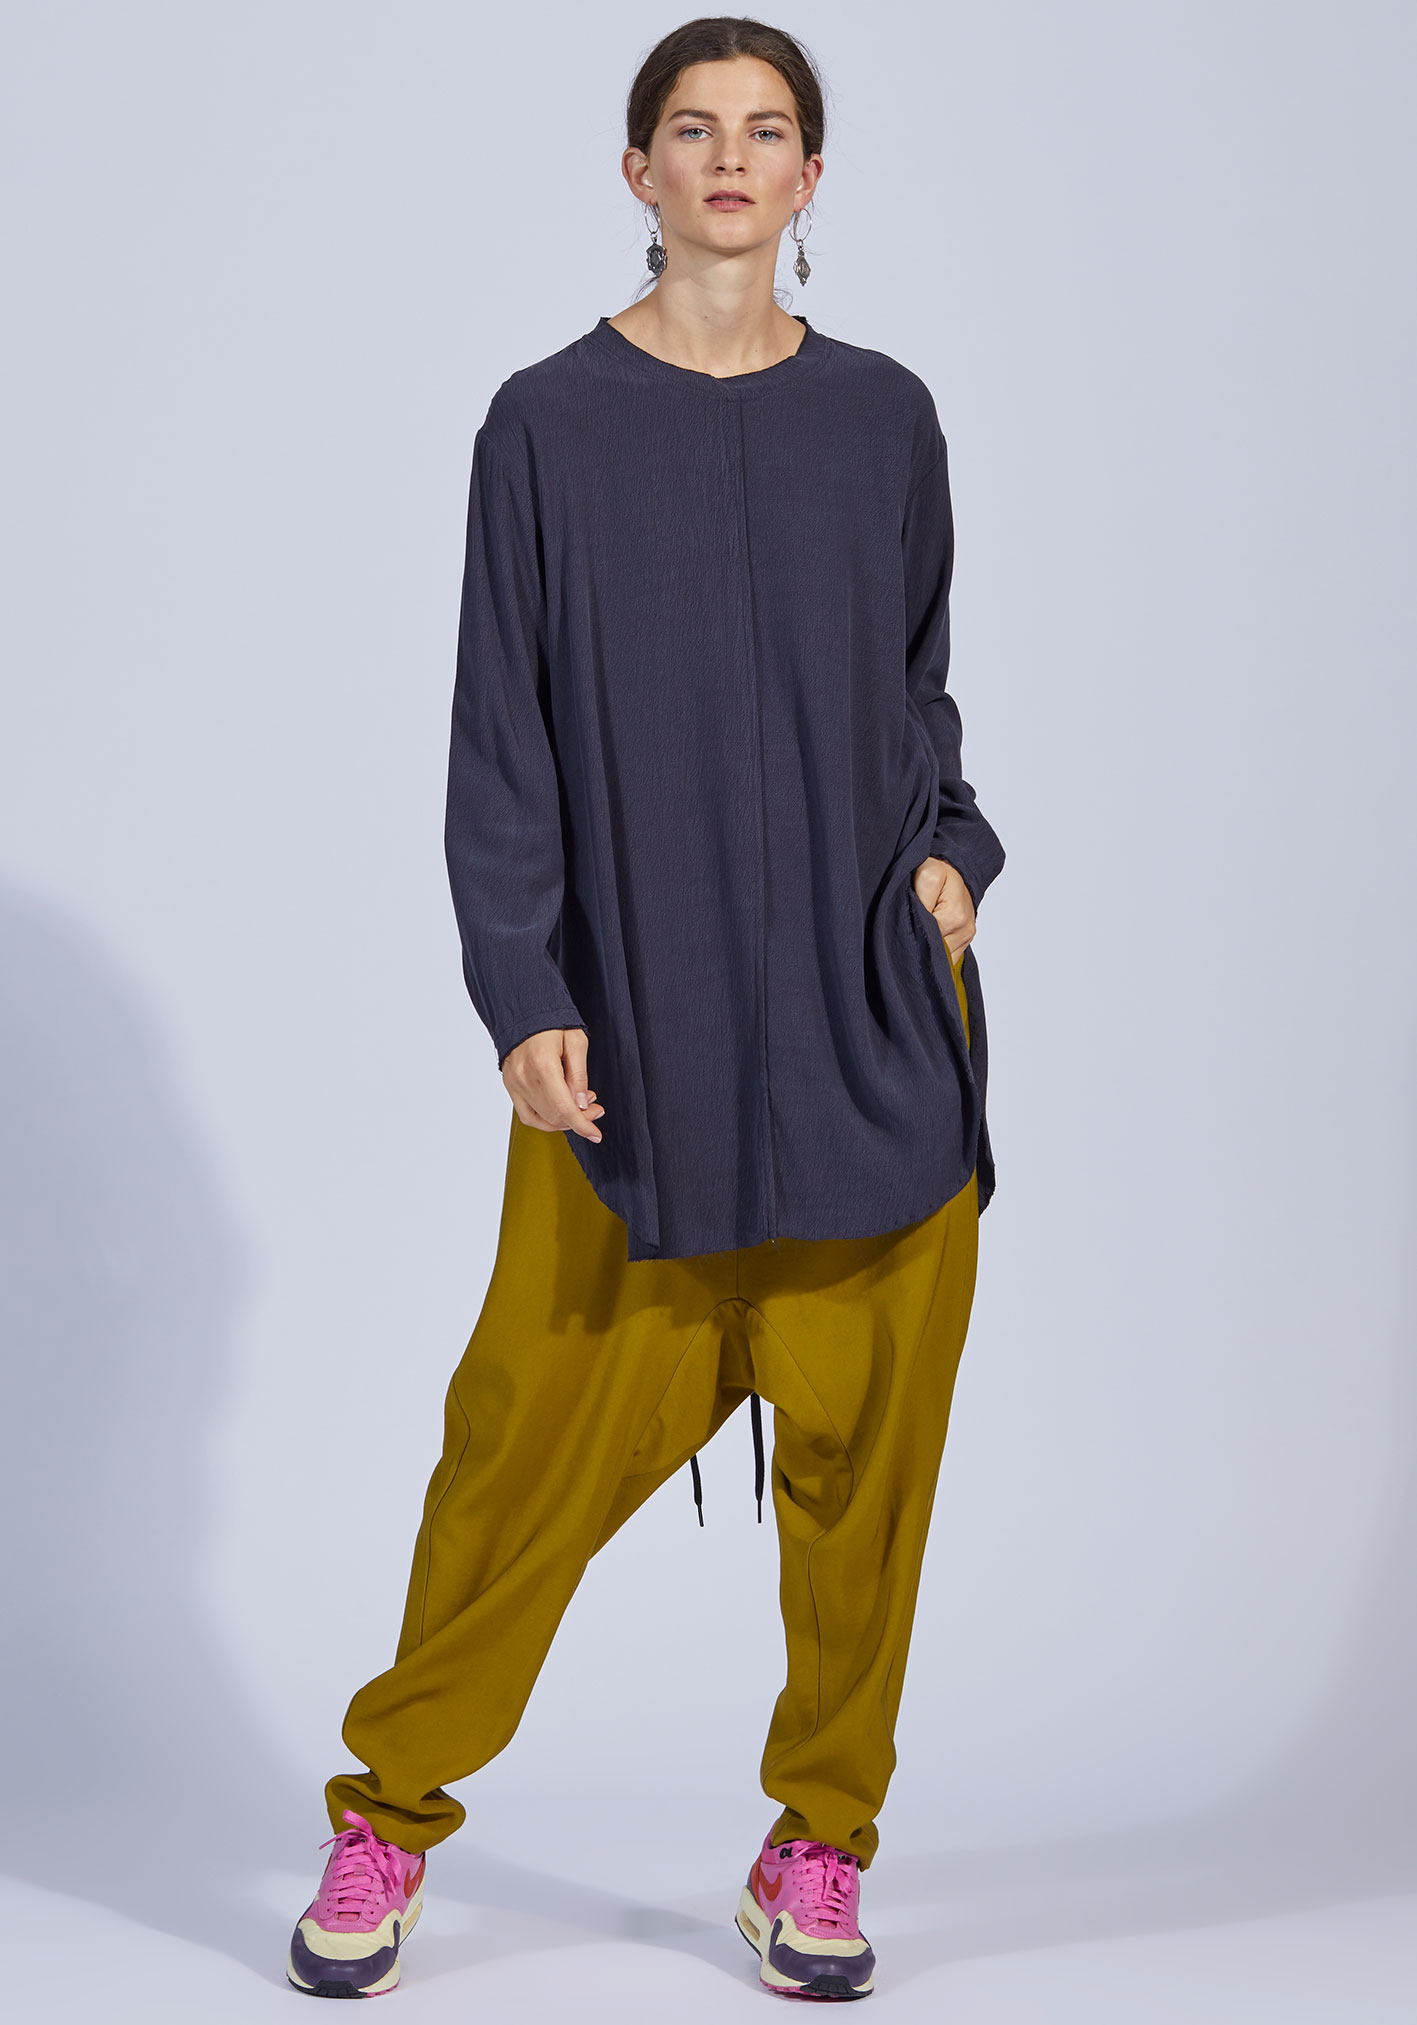 buy the latest Arc Contour Tunic online